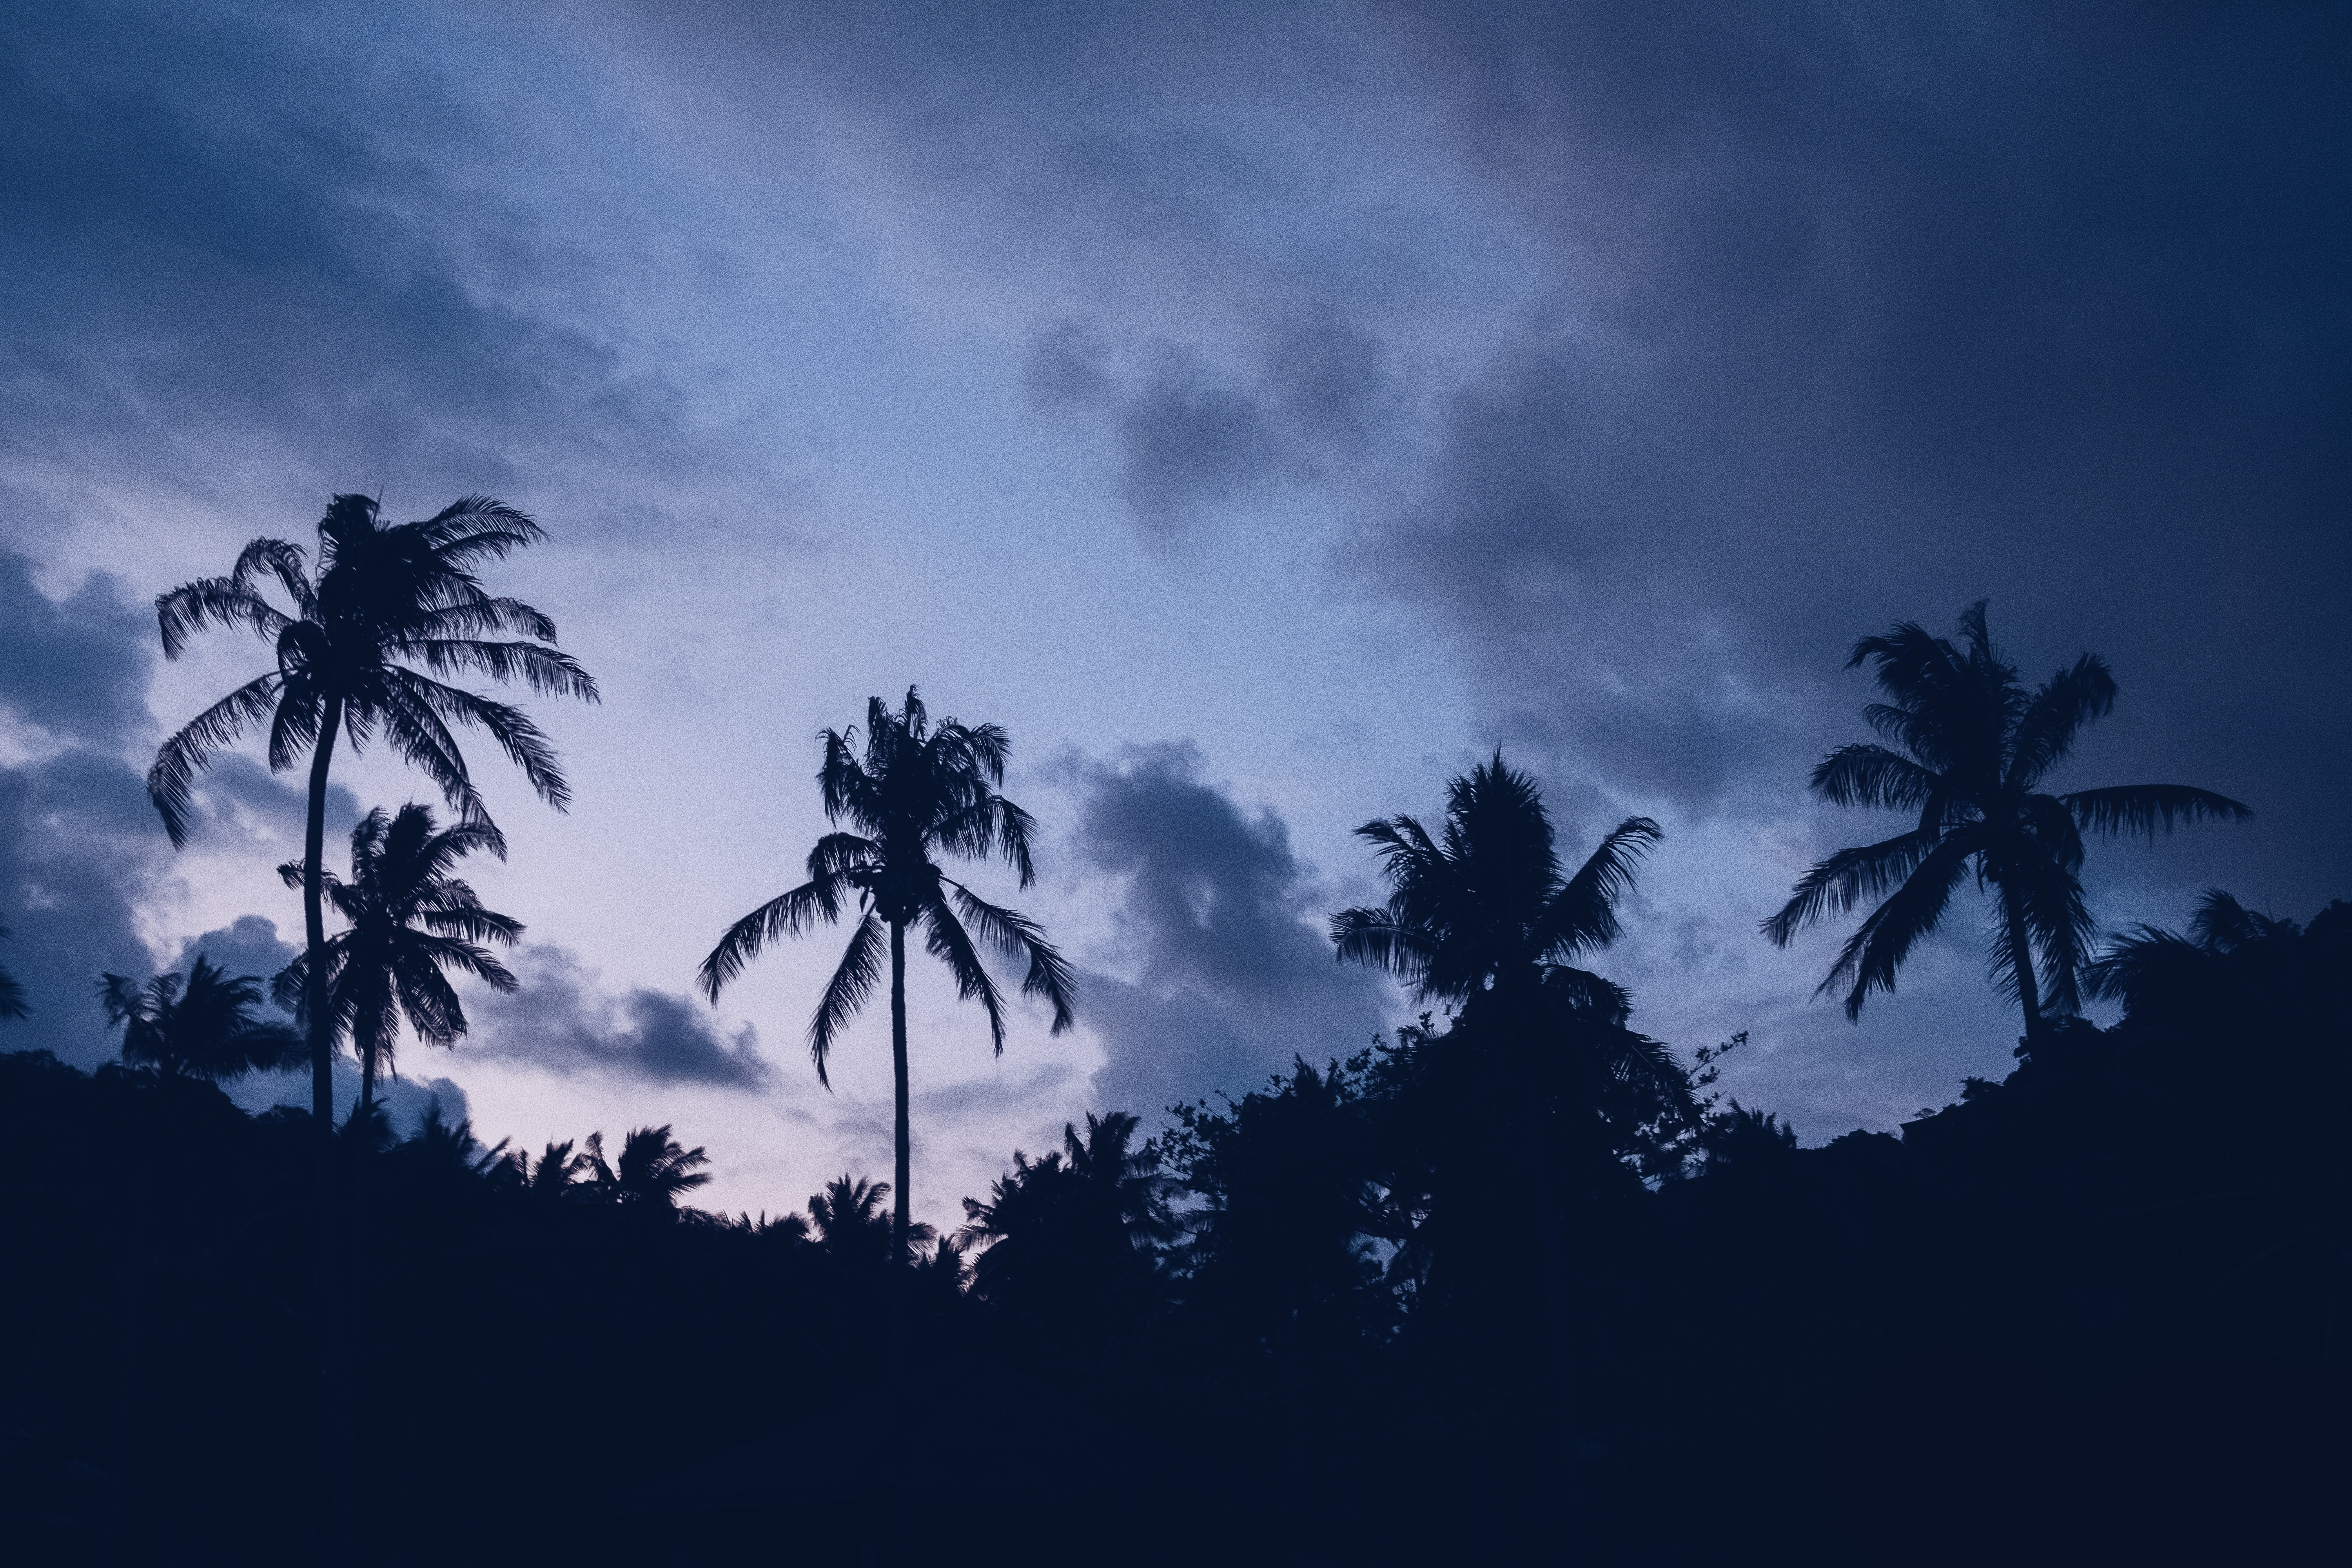 145779 download wallpaper Dark, Night, Clouds, Palms screensavers and pictures for free